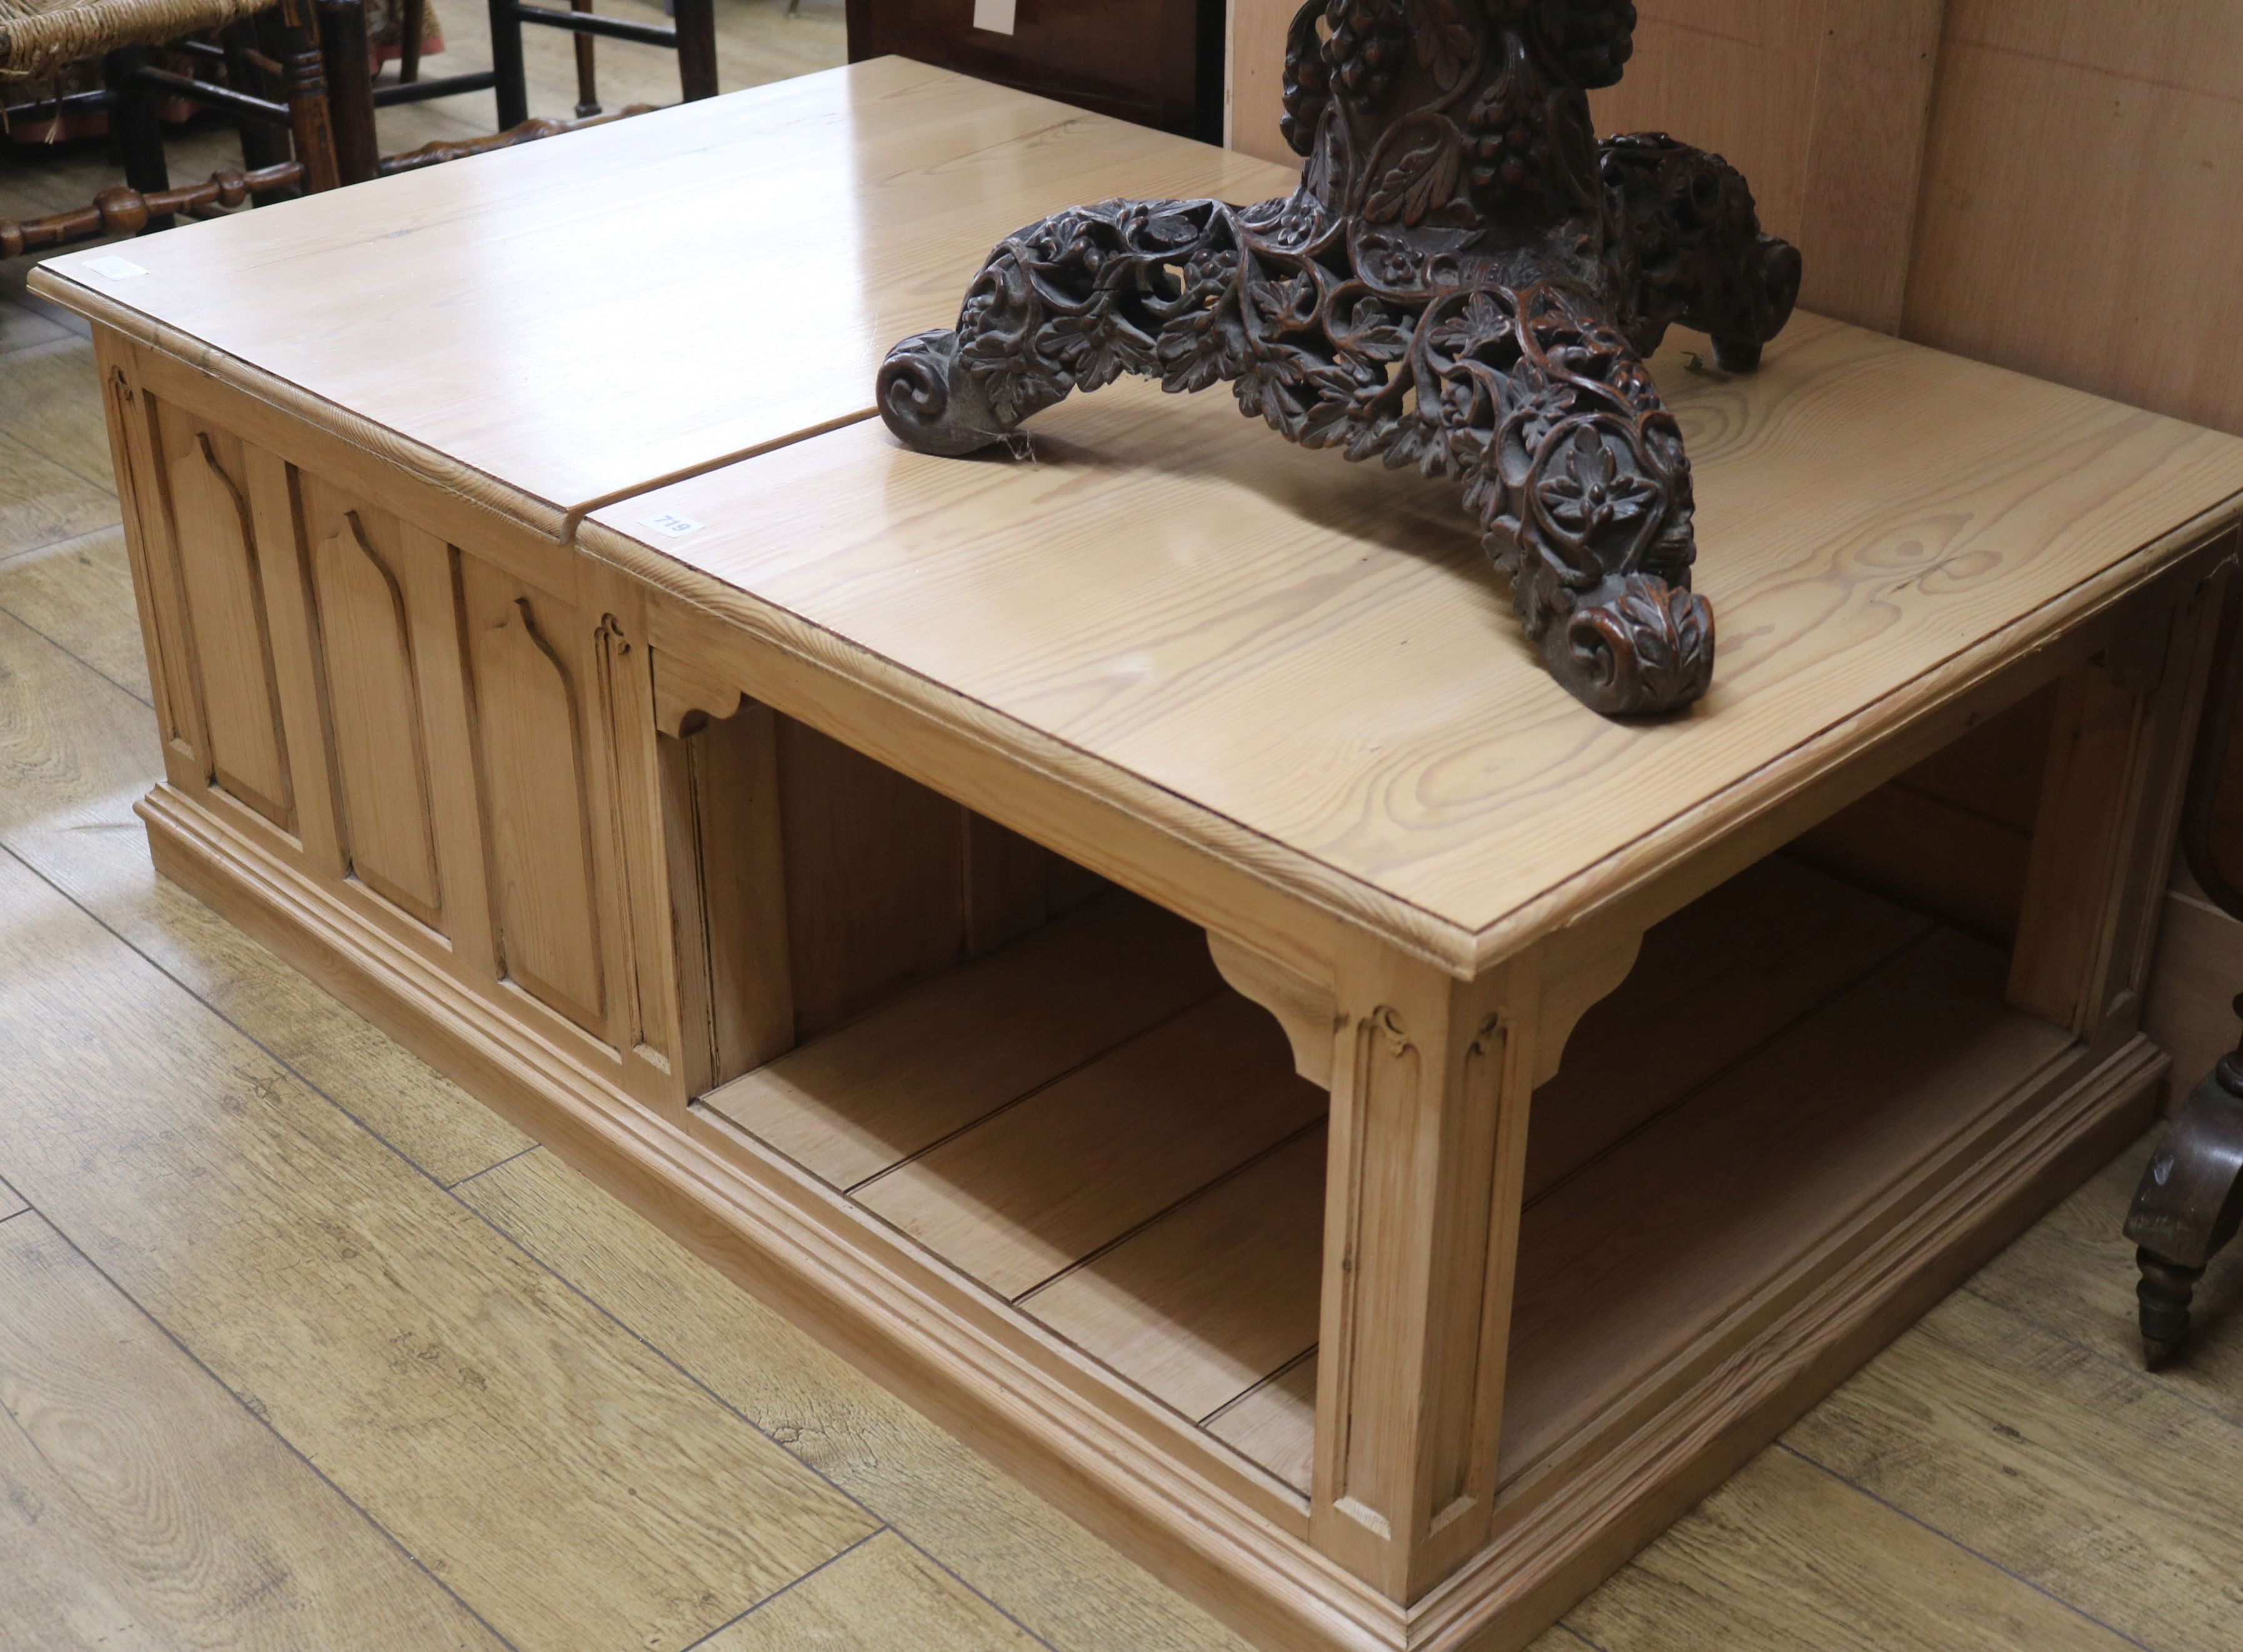 A Gothic Style Coffee Table